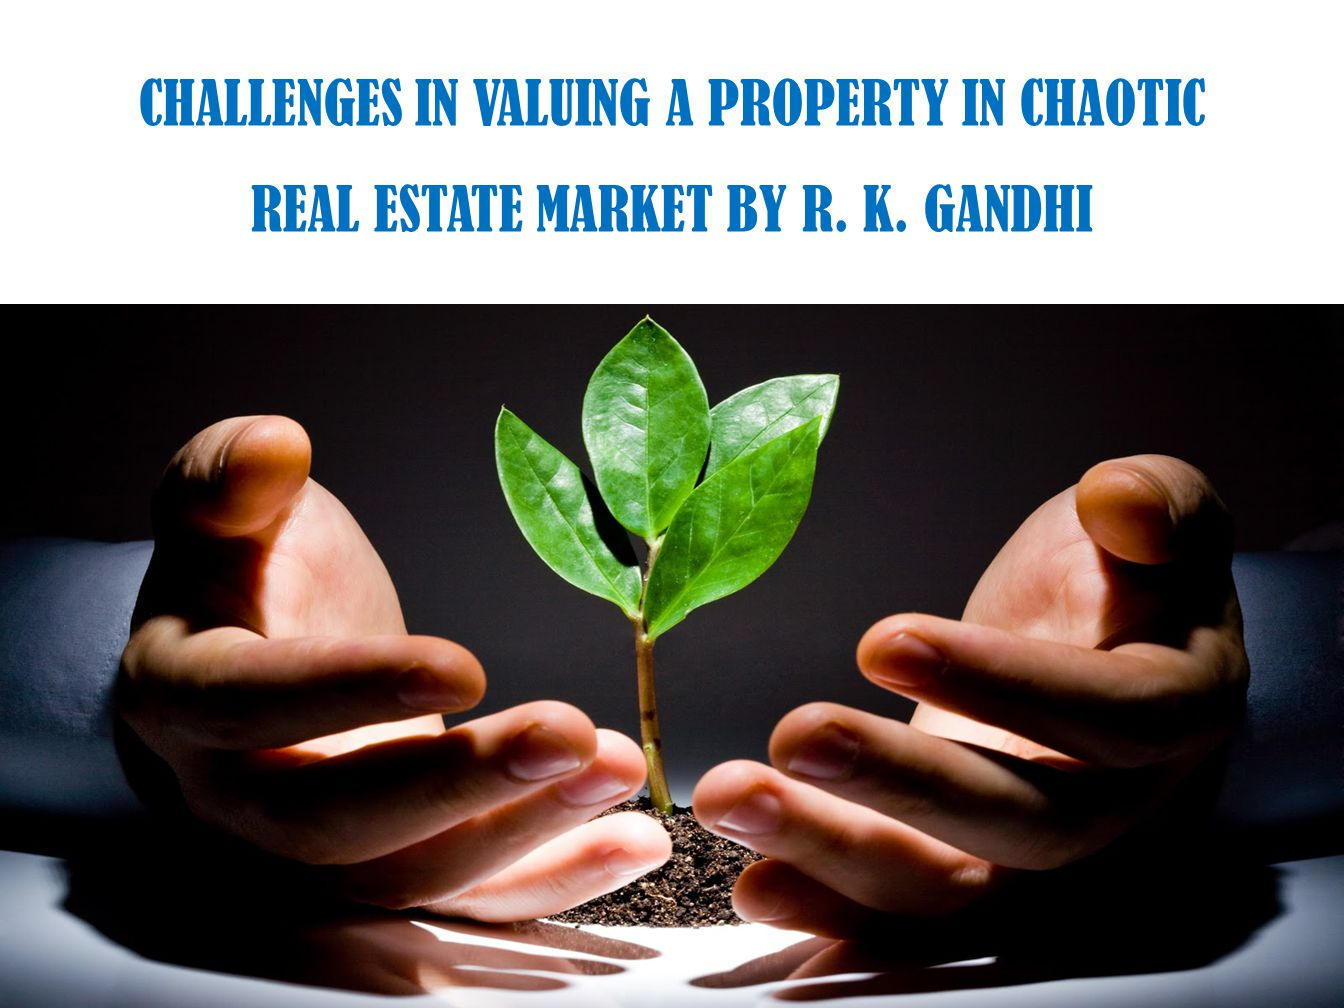 CHALLENGES IN VALUING A PROPERTY IN CHAOTIC REAL ESTATE MARKET BY R. K. GANDHI